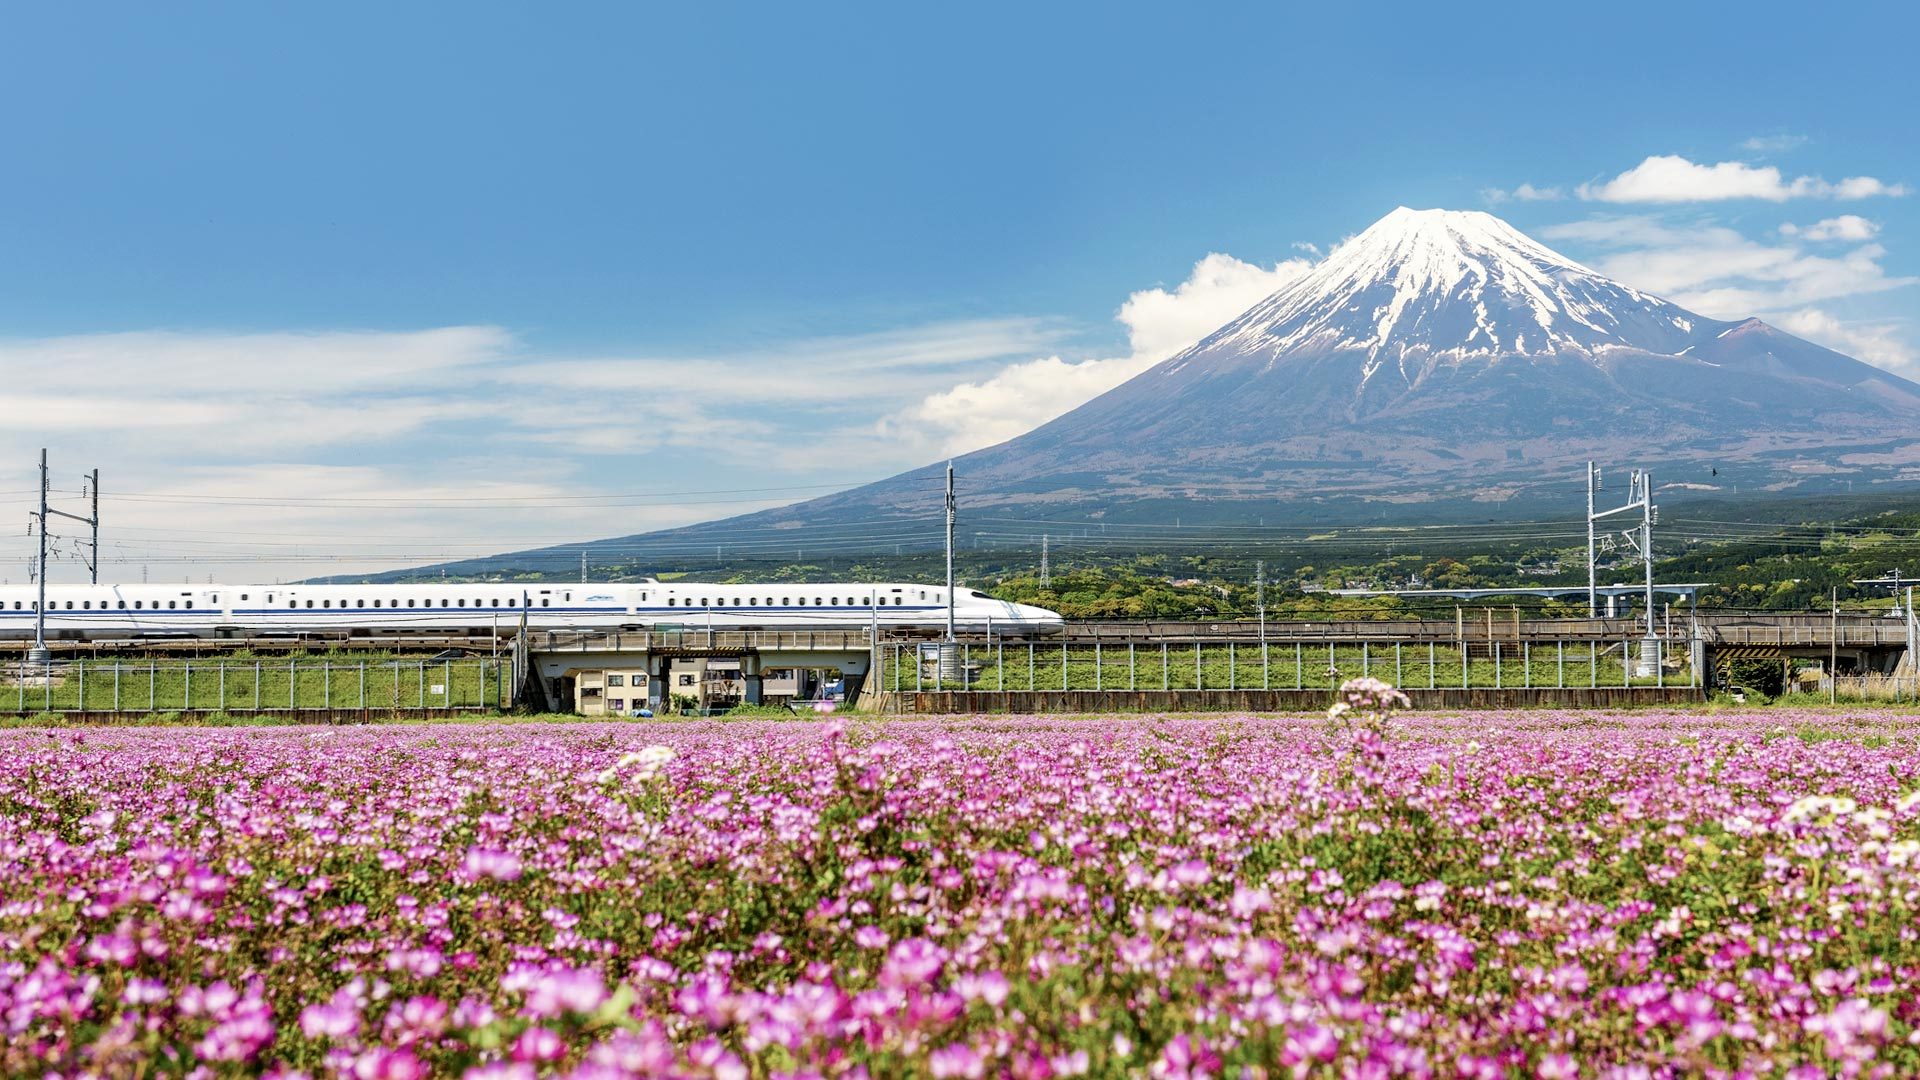 Wallpaper mountains train spring Japan flowering Gunma